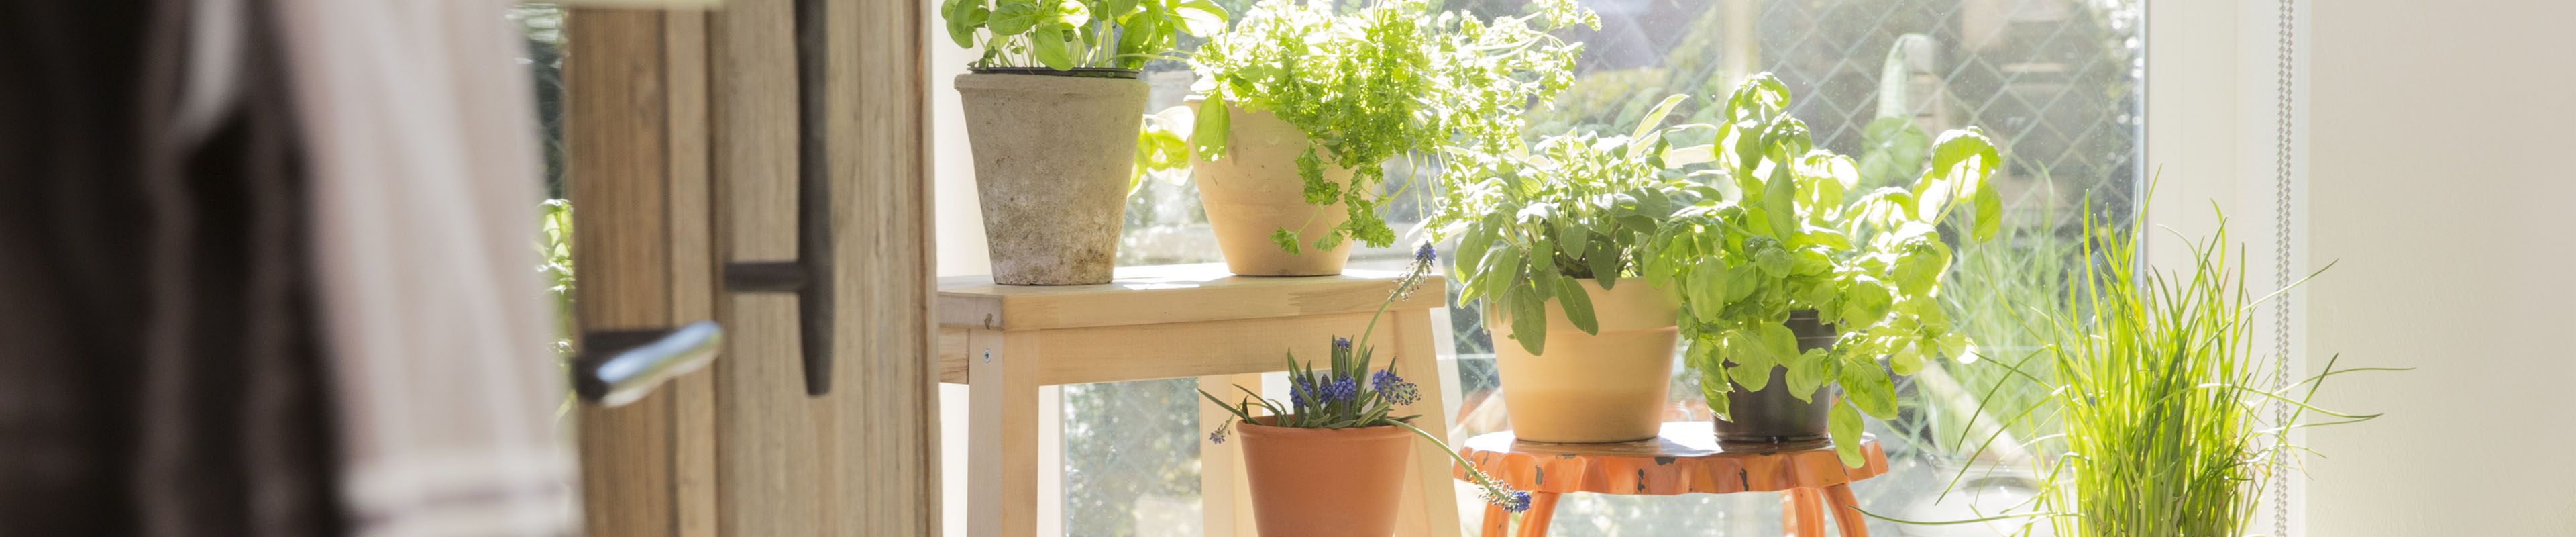 8 houseplants that improve air quality american family insurance - Plants can improve ambience home ...